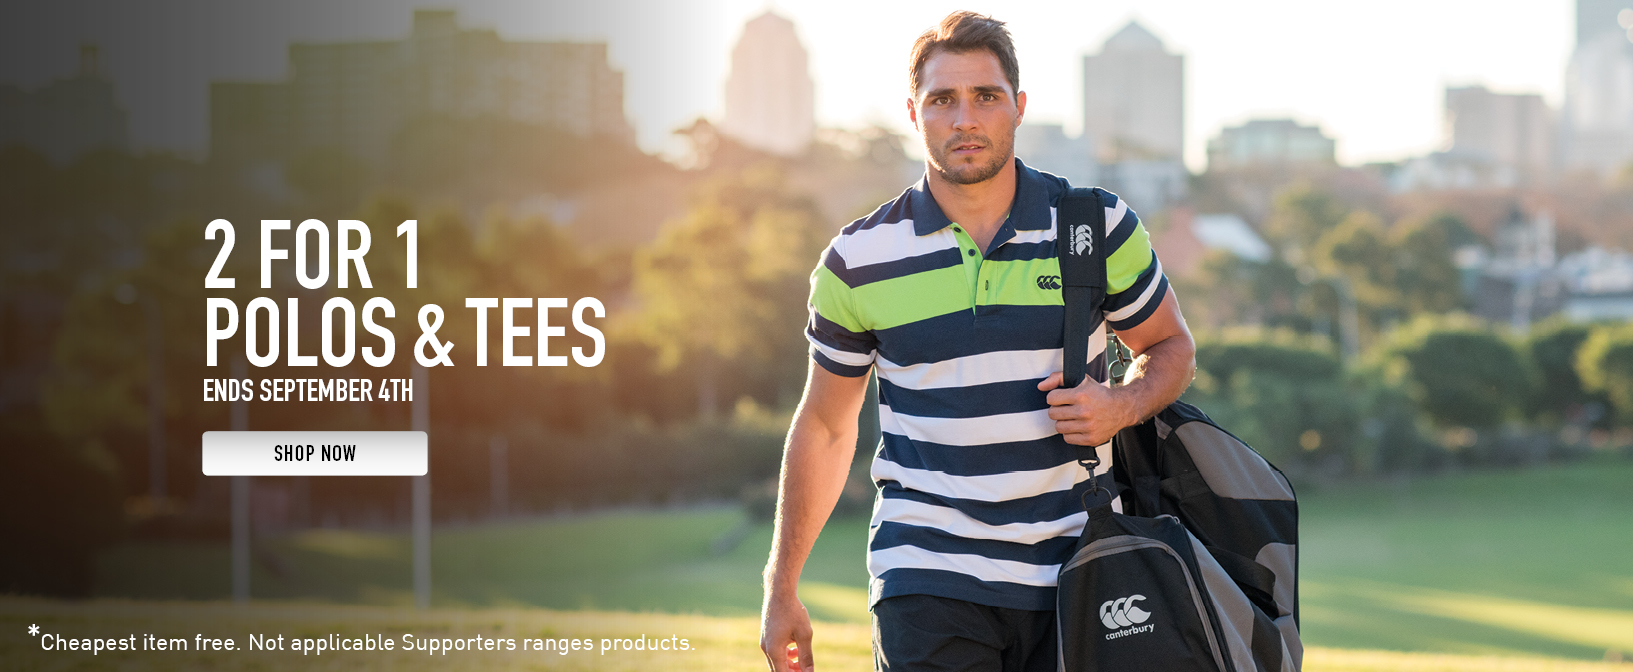 Father's Day Offer - 2 for 1 on Polos & Tees